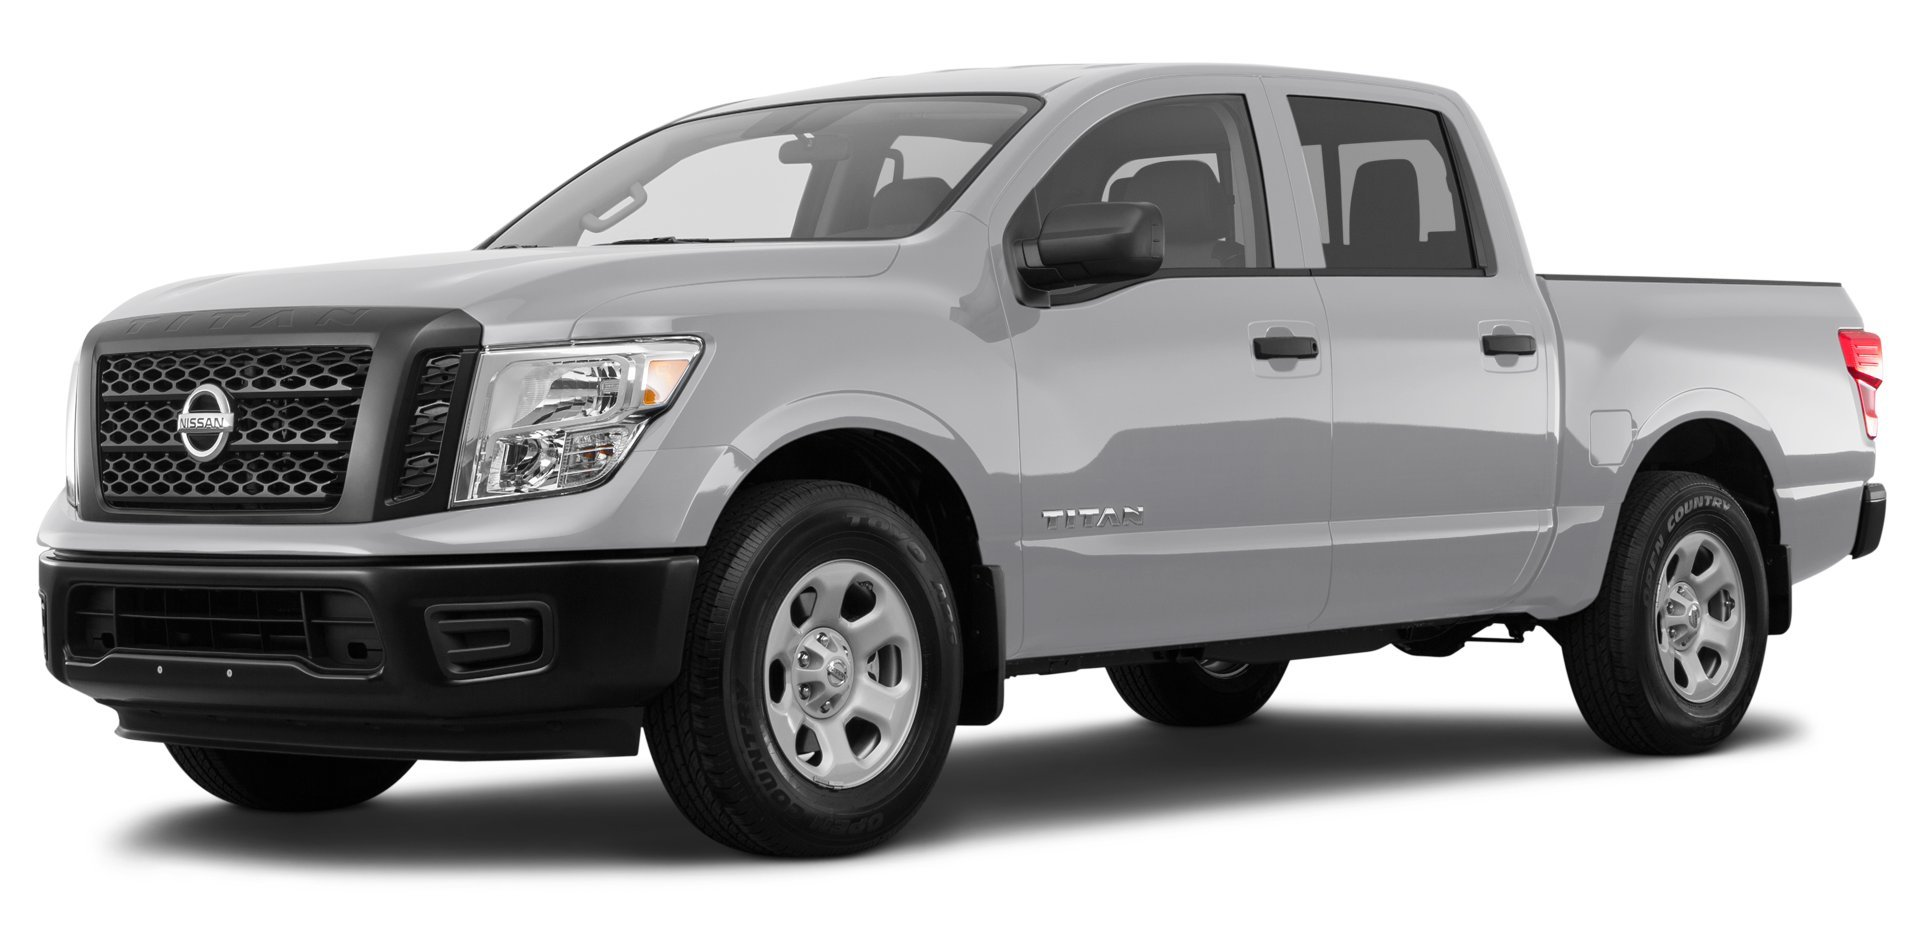 Amazon.com: 2017 Toyota Tacoma Reviews, Images, and Specs: Vehicles